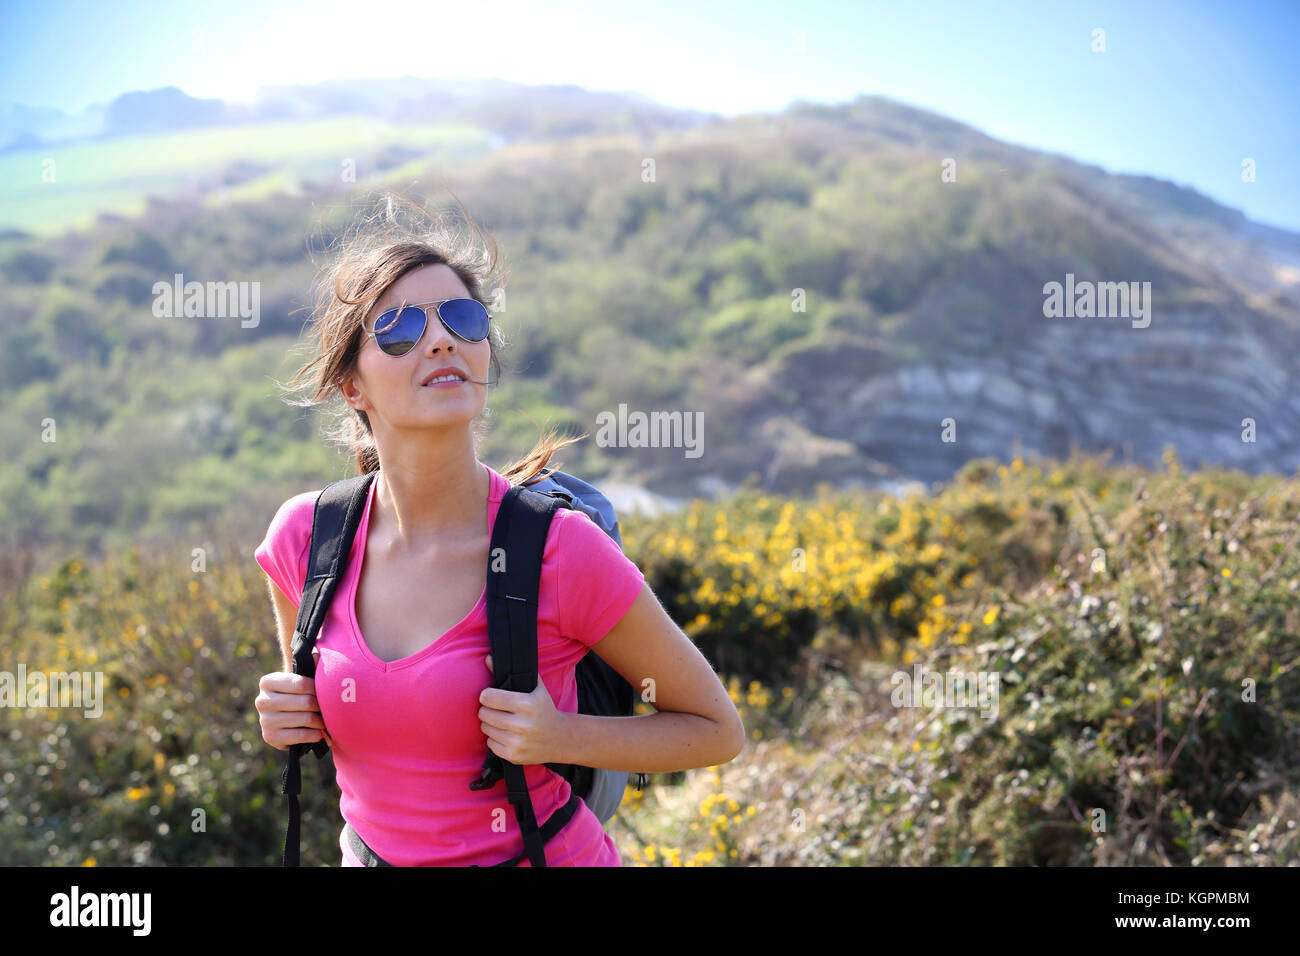 Smiling hiker girl walking in country path - Stock Image